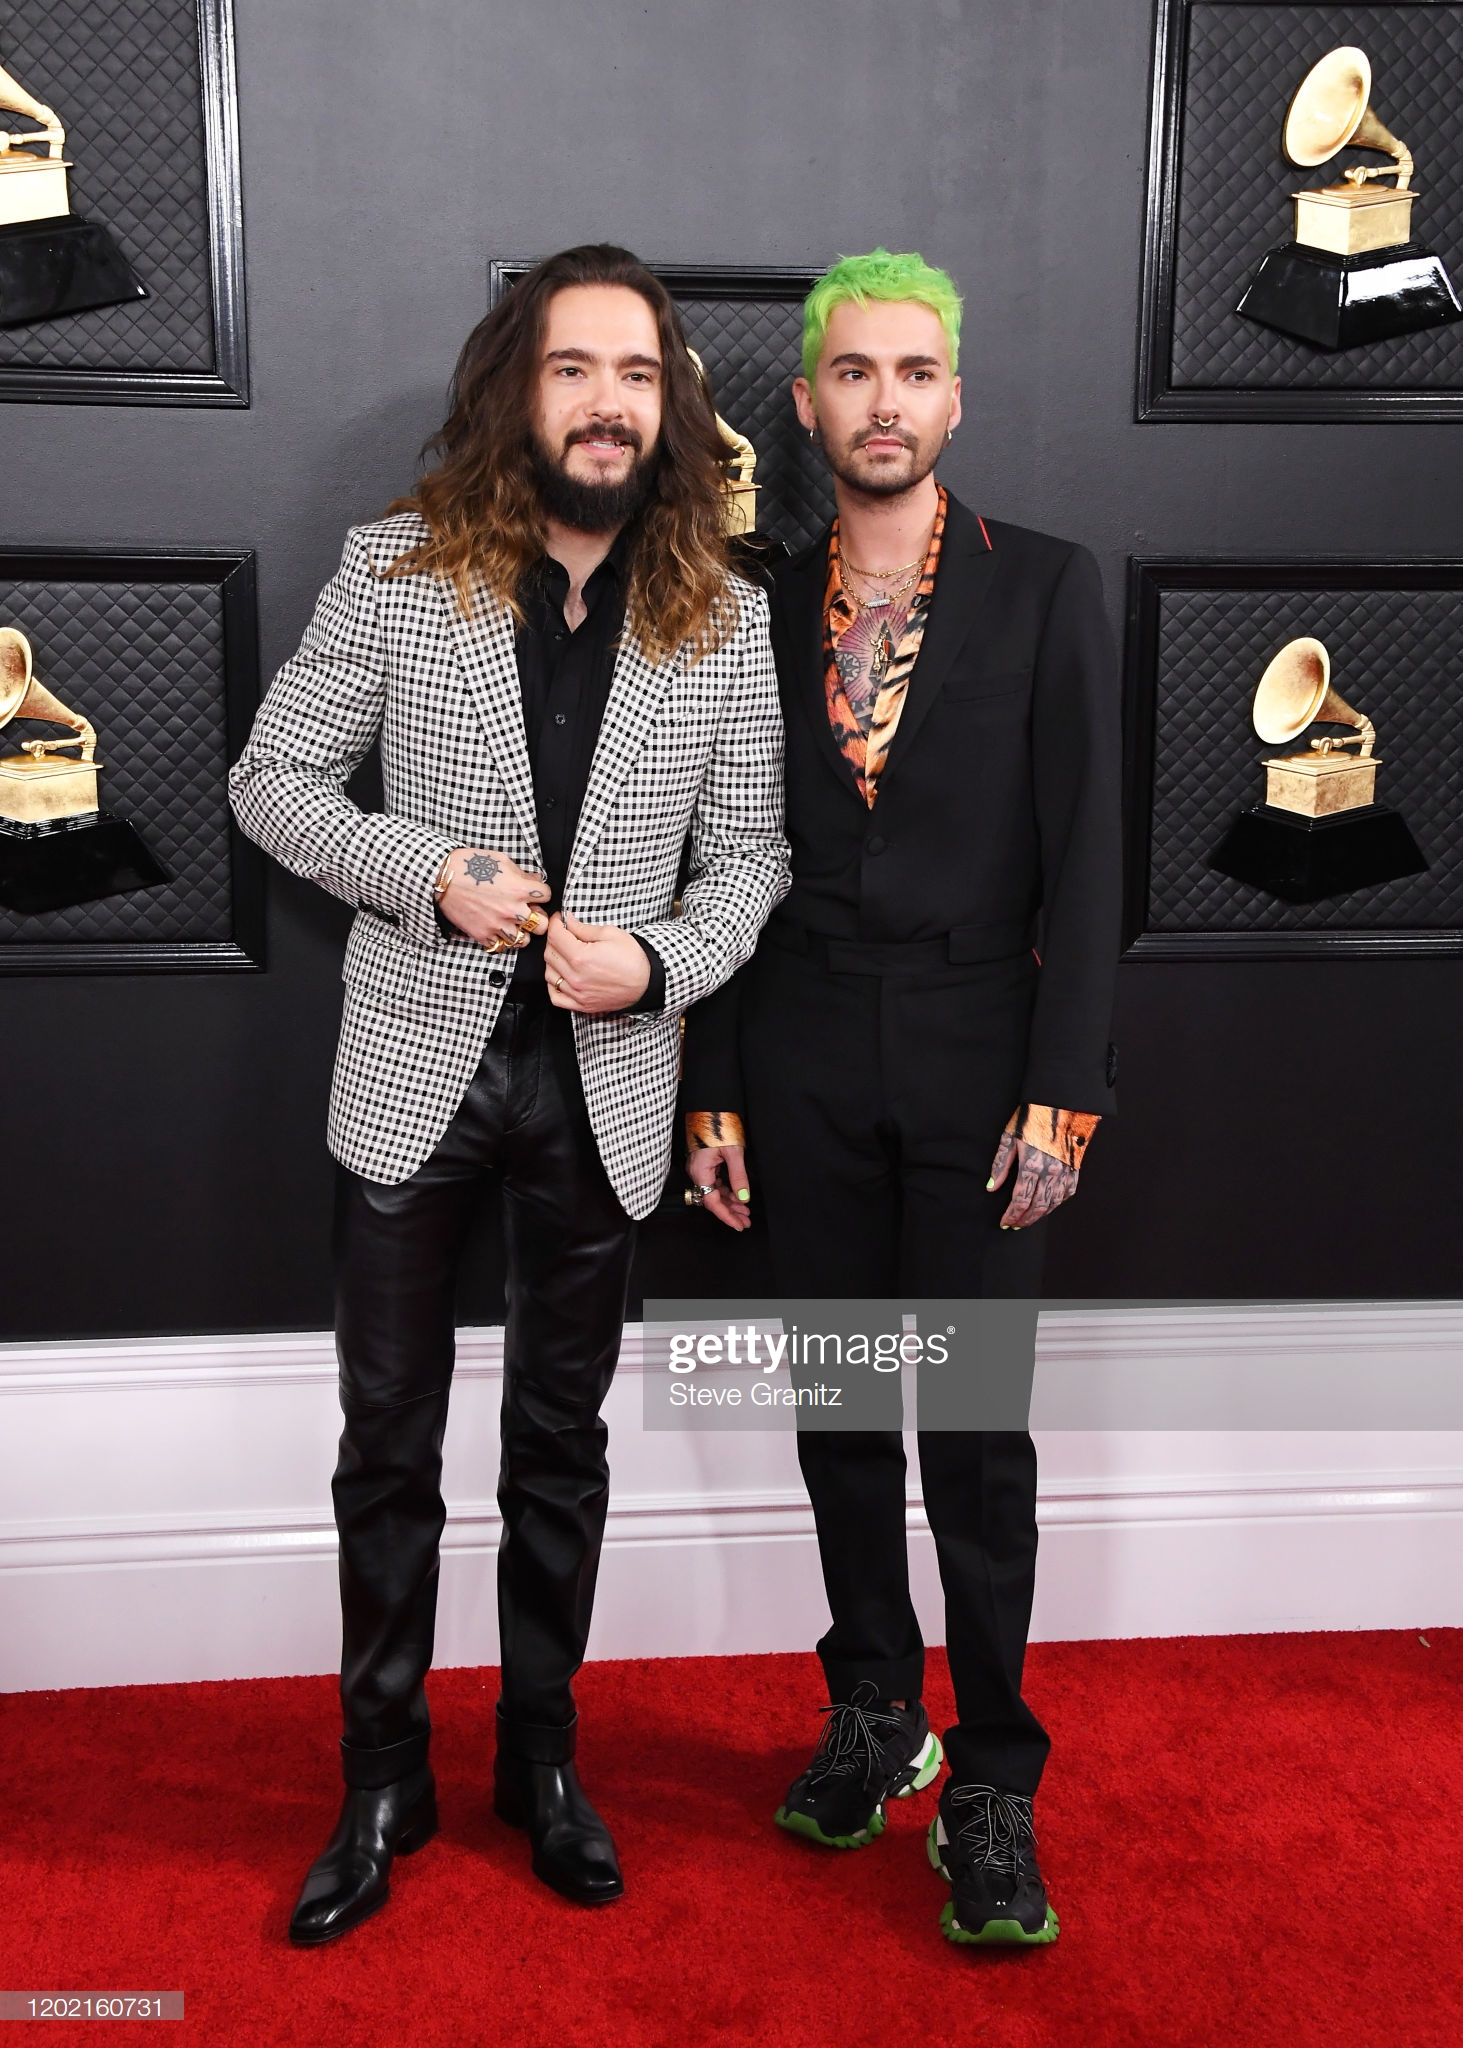 26.01.20 - Bill and Tom at Grammys, Red Carpet, Staples Centre, LA